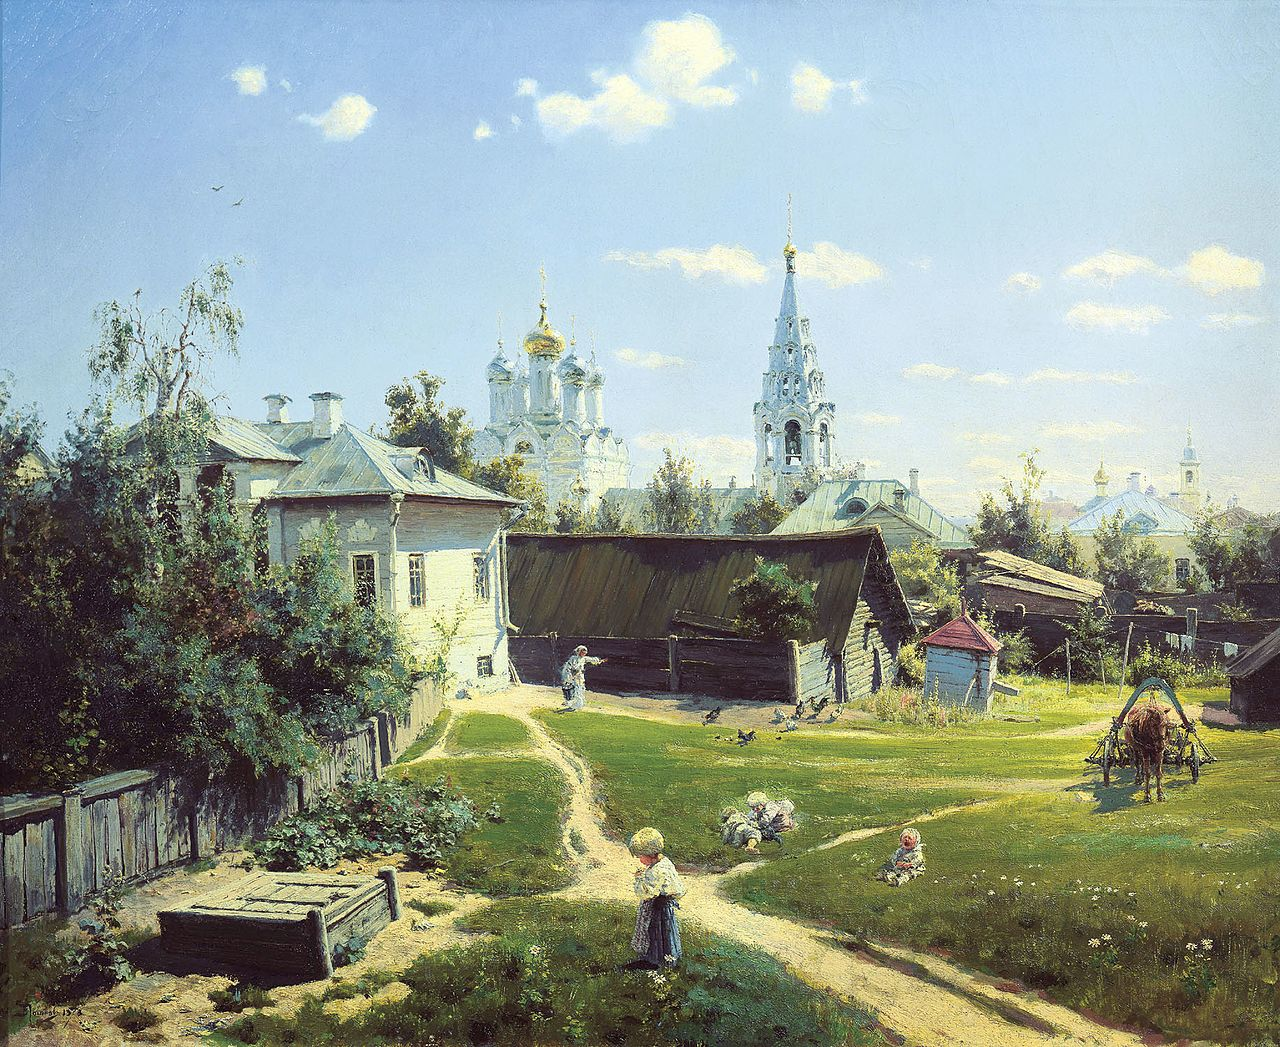 One of Polenov's most famous paintings - 'Moscow Courtyard'. Source: State Tretyakov Gallery